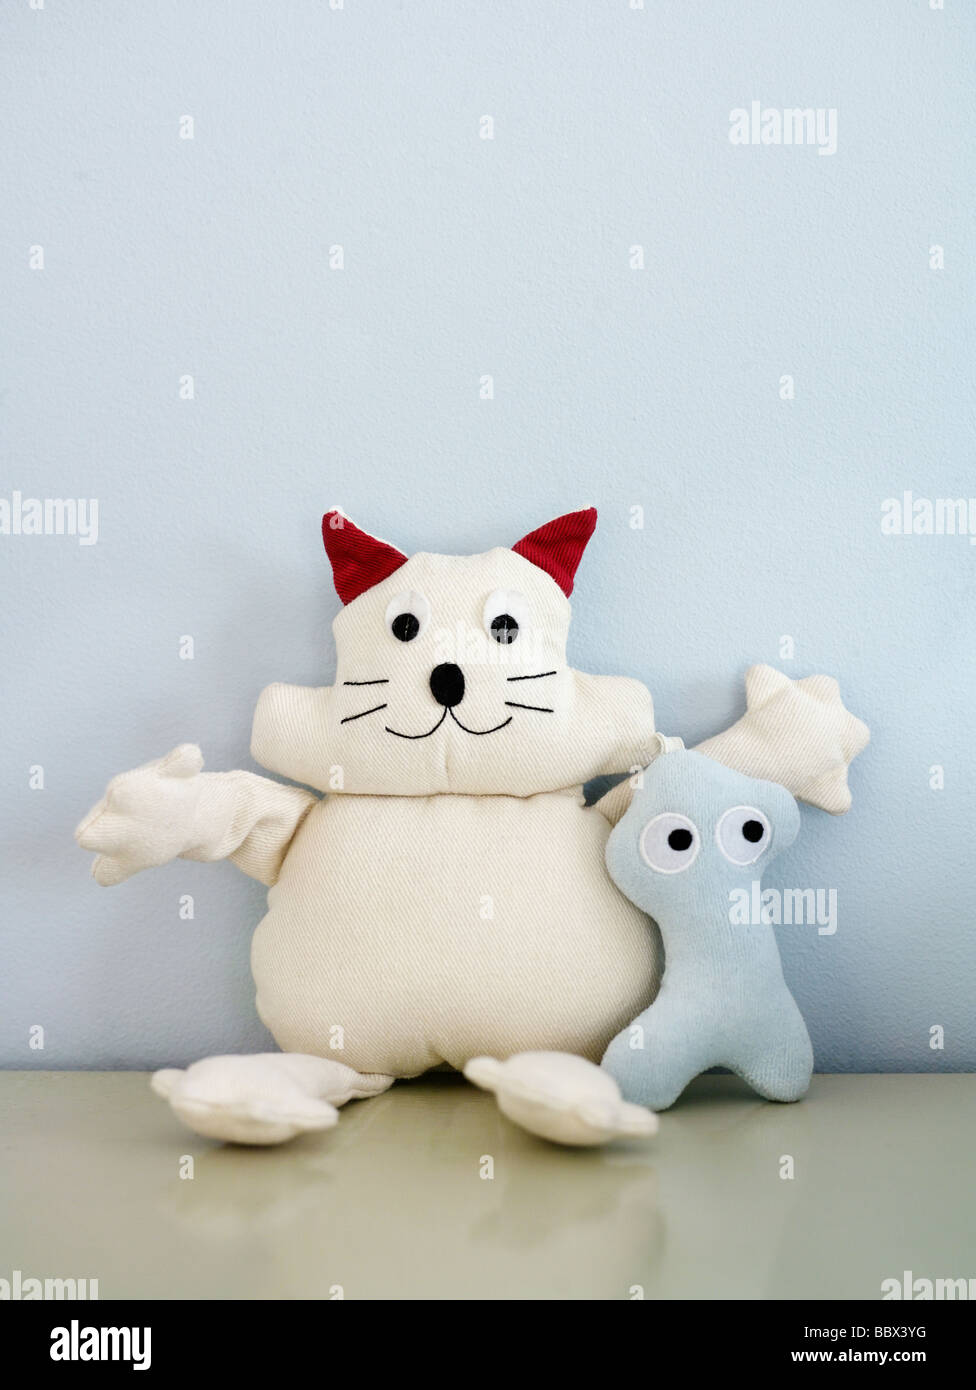 A soft cuddly toy Sweden. - Stock Image